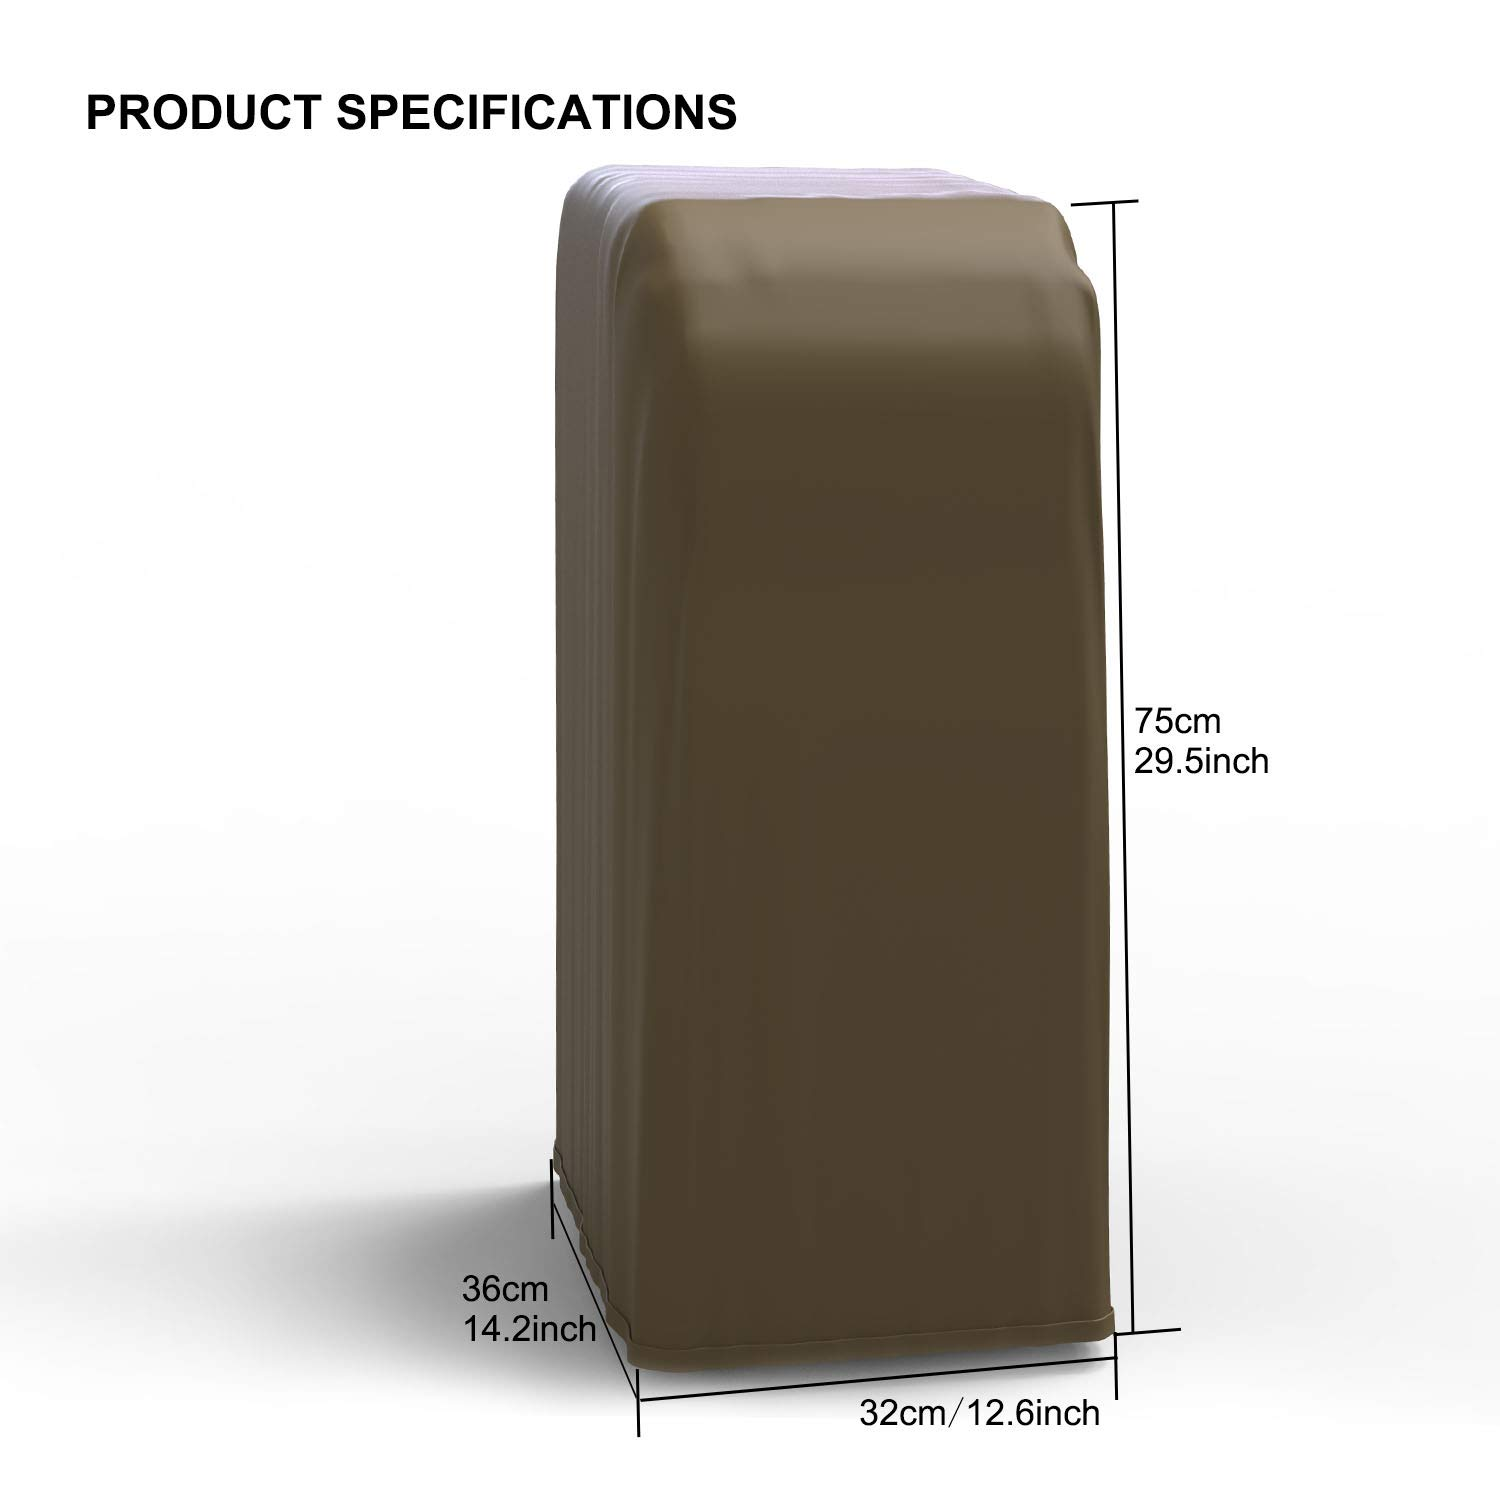 Durable Waterproof Dust Proof Fabric Covers with Telescopic Rope Rhodesy Universal Portable Air Conditioner Cover Furniture Cover Protector 14 * 12.5 * 29.5 inches 36 * 32 * 75cm